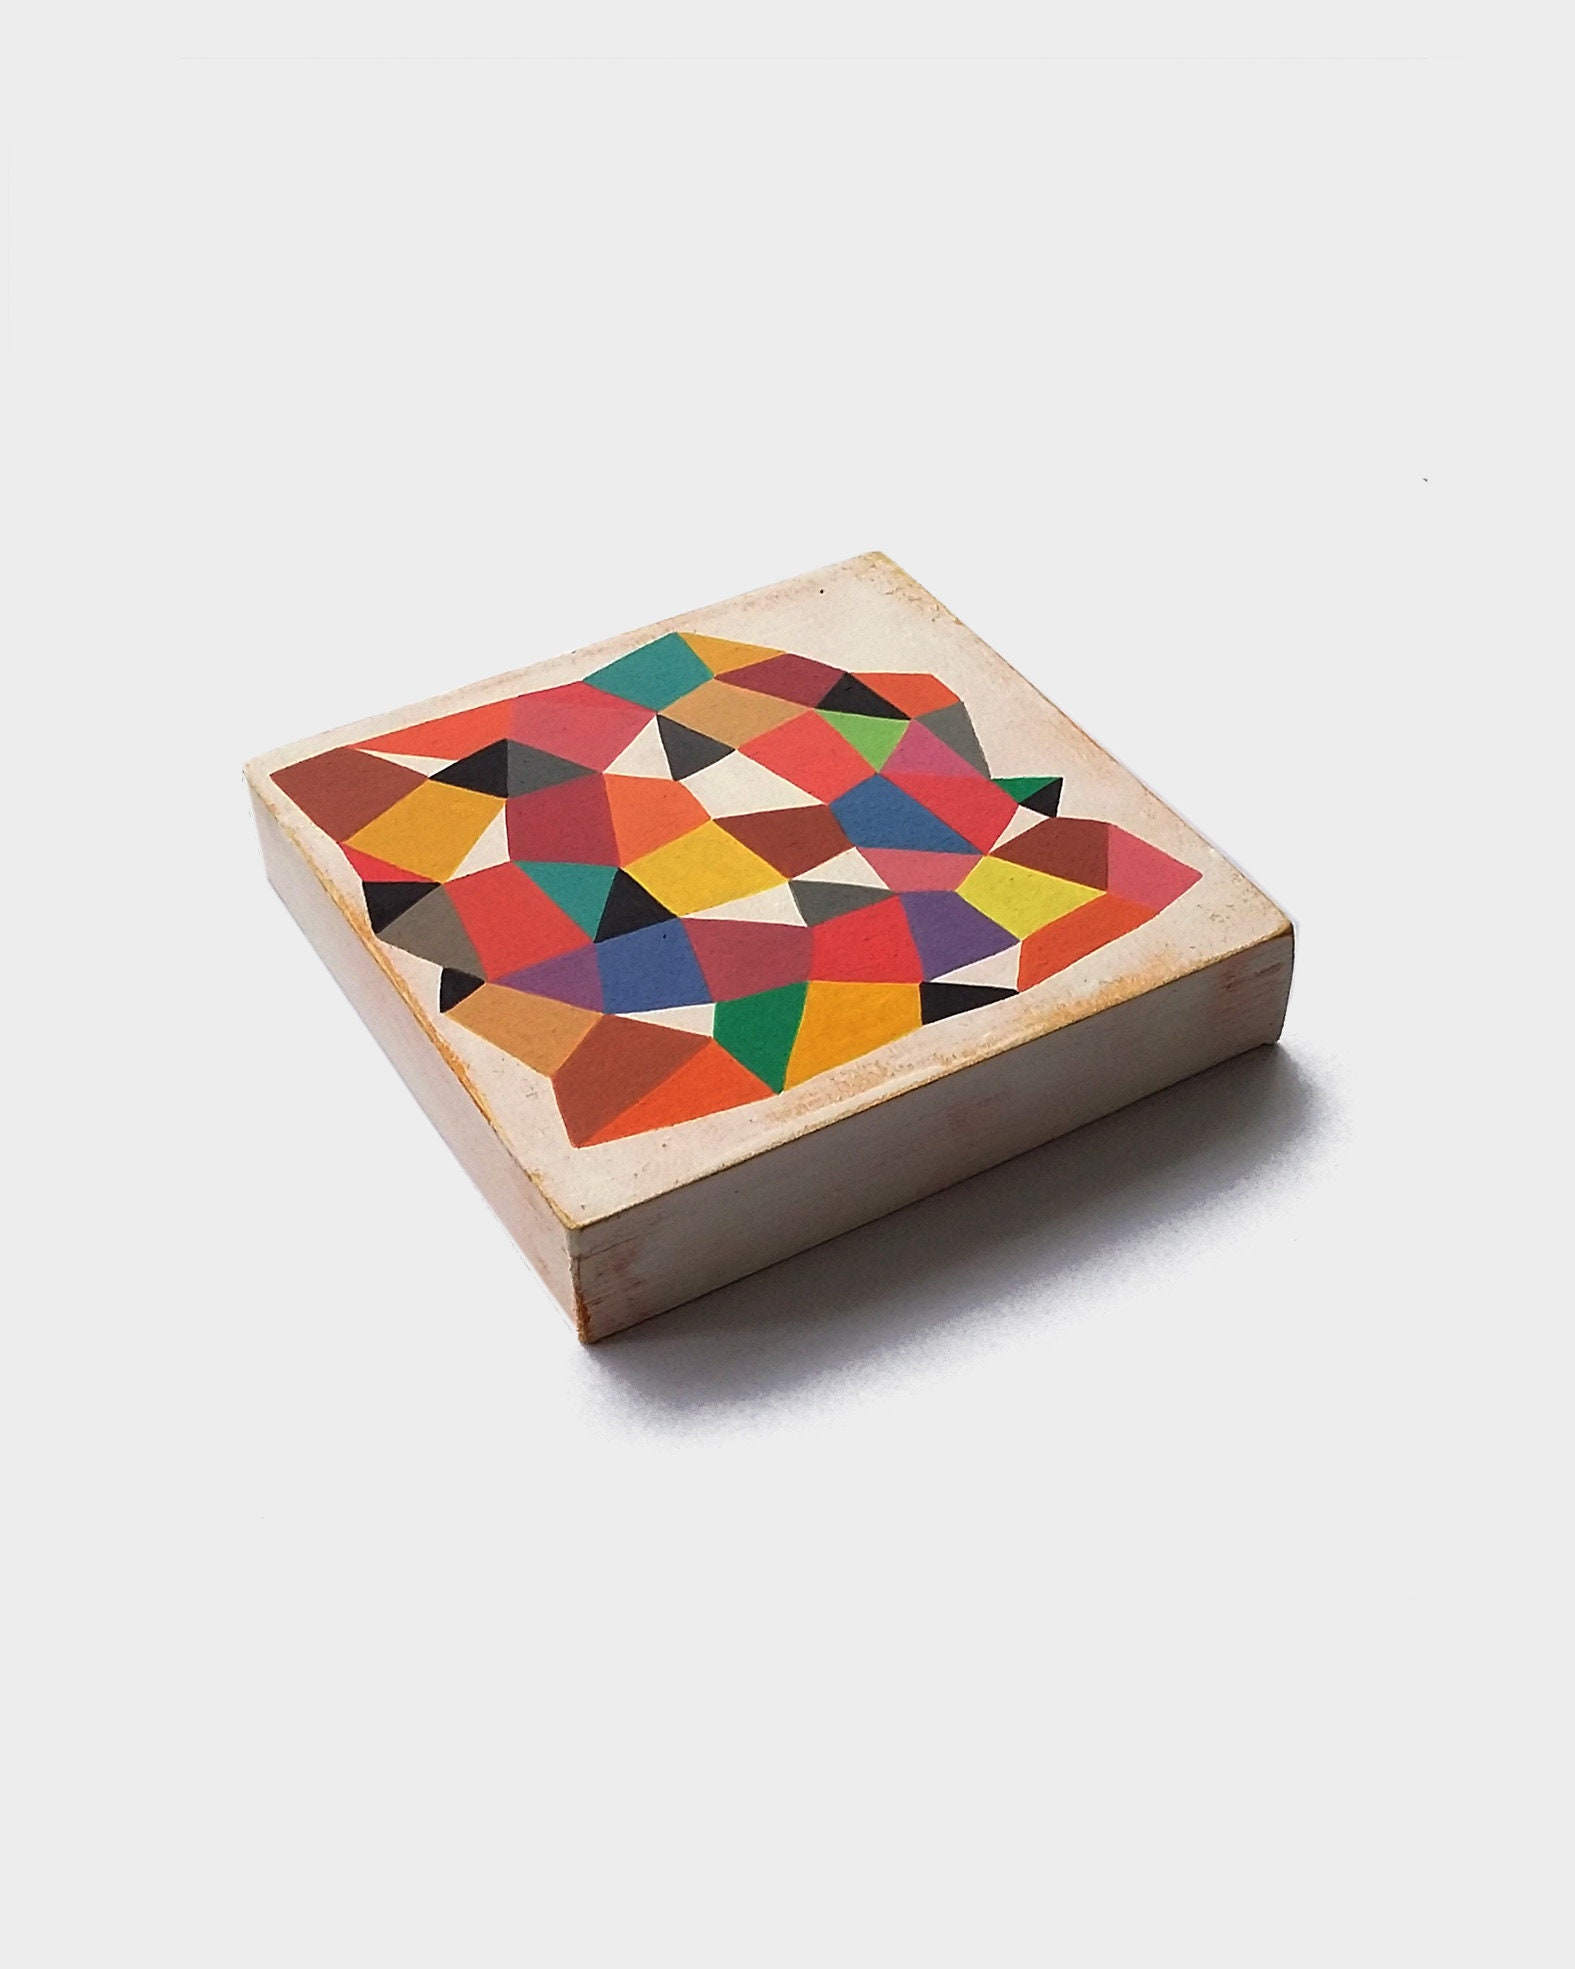 Mesh_001, original colourful geometric art - product images  of